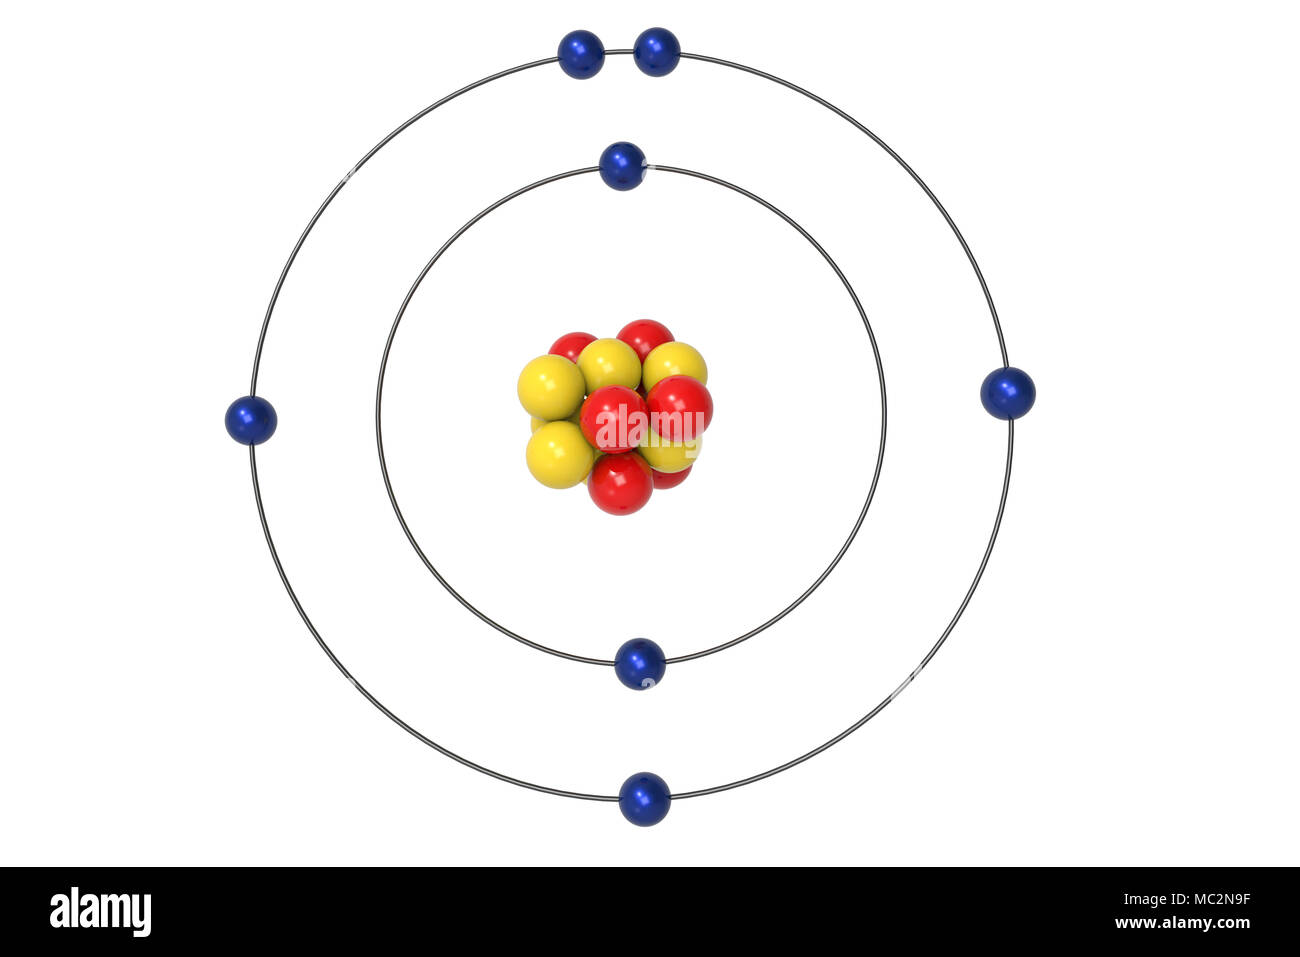 Nitrogen atom bohr model with proton neutron and electron 3d nitrogen atom bohr model with proton neutron and electron 3d illustration ccuart Image collections